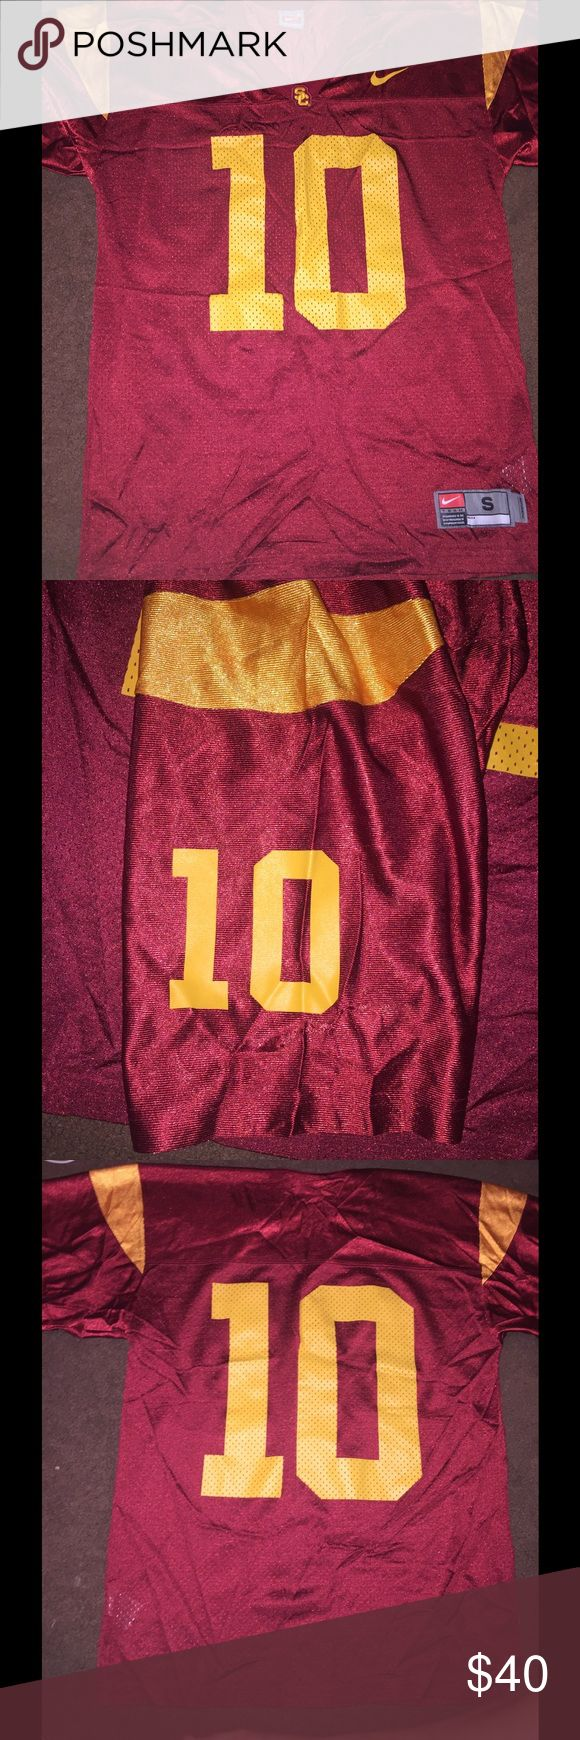 Nike USC-University of Southern California Jersey This football jersey is in great condition. It has barely been worn. It's a size small and is perfect for game days. Nike Tops Tees - Short Sleeve